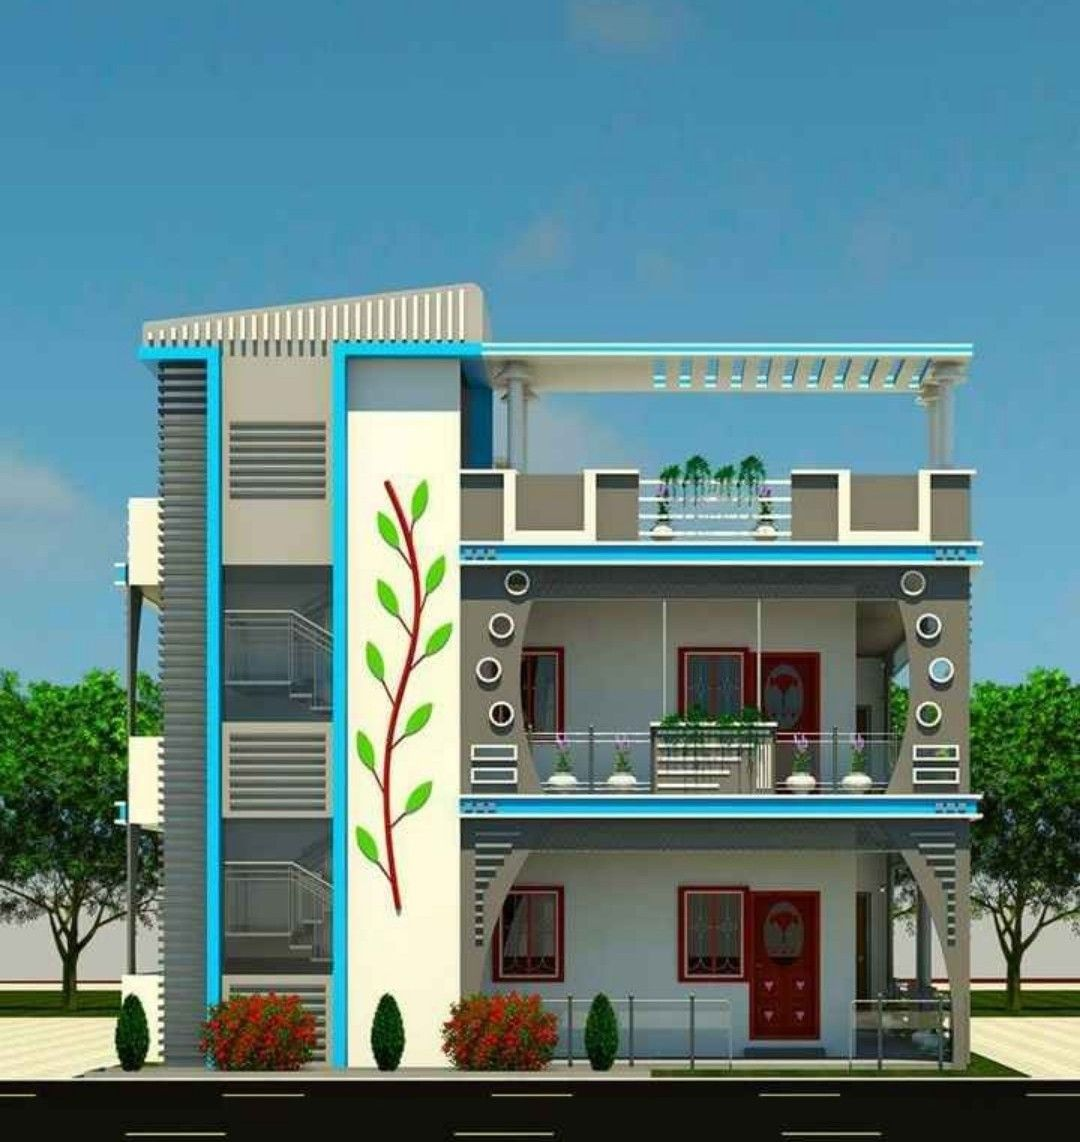 house plans indian dream building elevation also exterior architectural design shedplans shed in rh pinterest